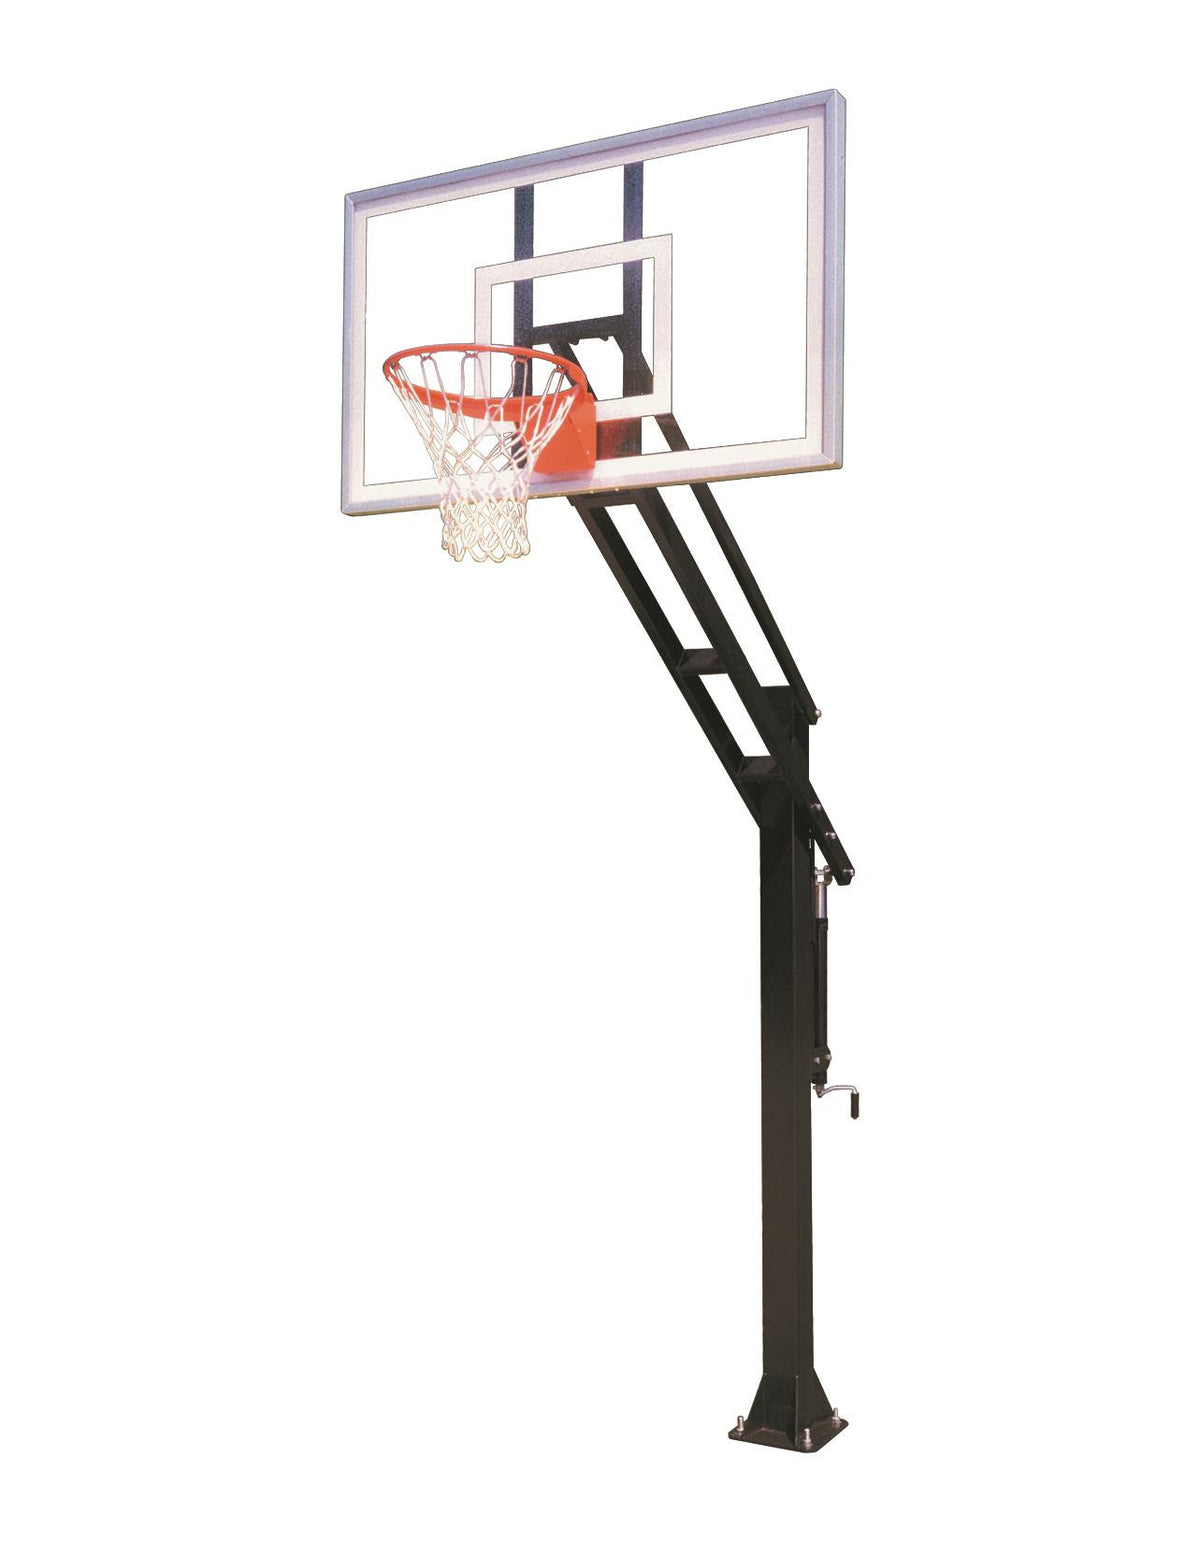 First Team Force Select In Ground Outdoor Adjustable Basketball Hoop 60 inch Acrylic